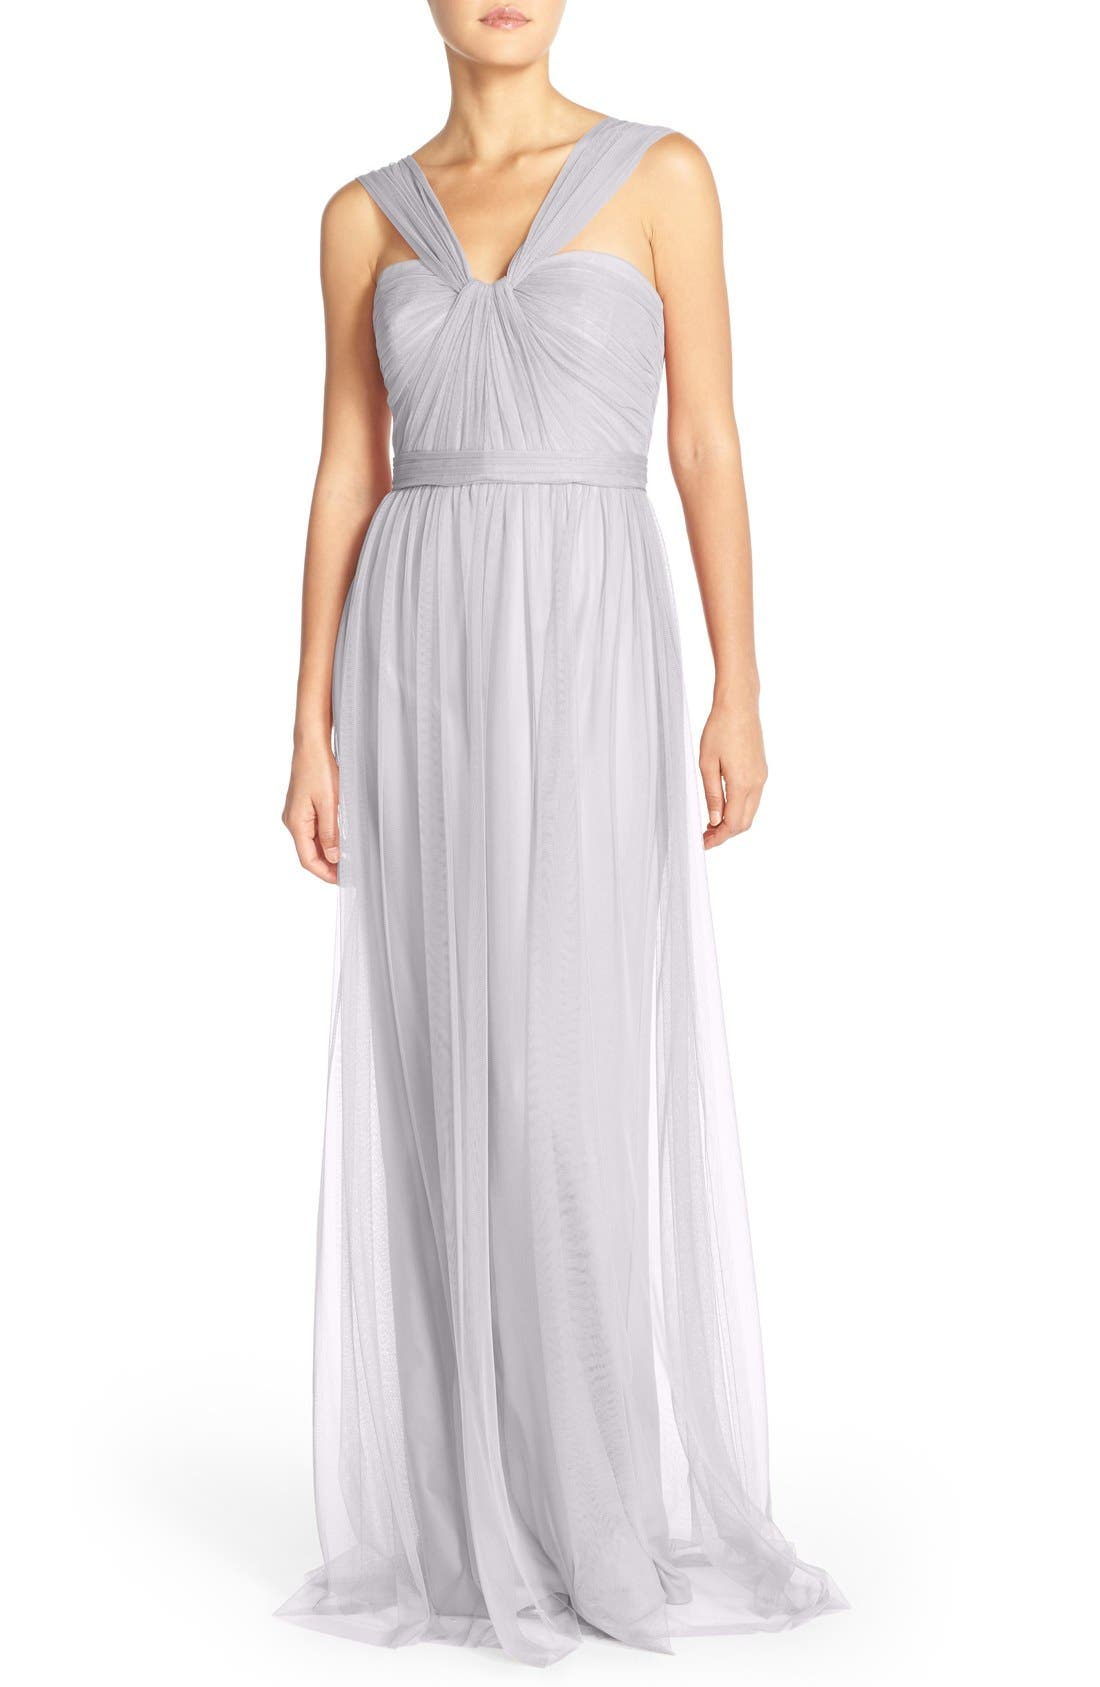 AMSALE 'Aisha' Tulle Twisted V-Neck Gown, Main, color, 050